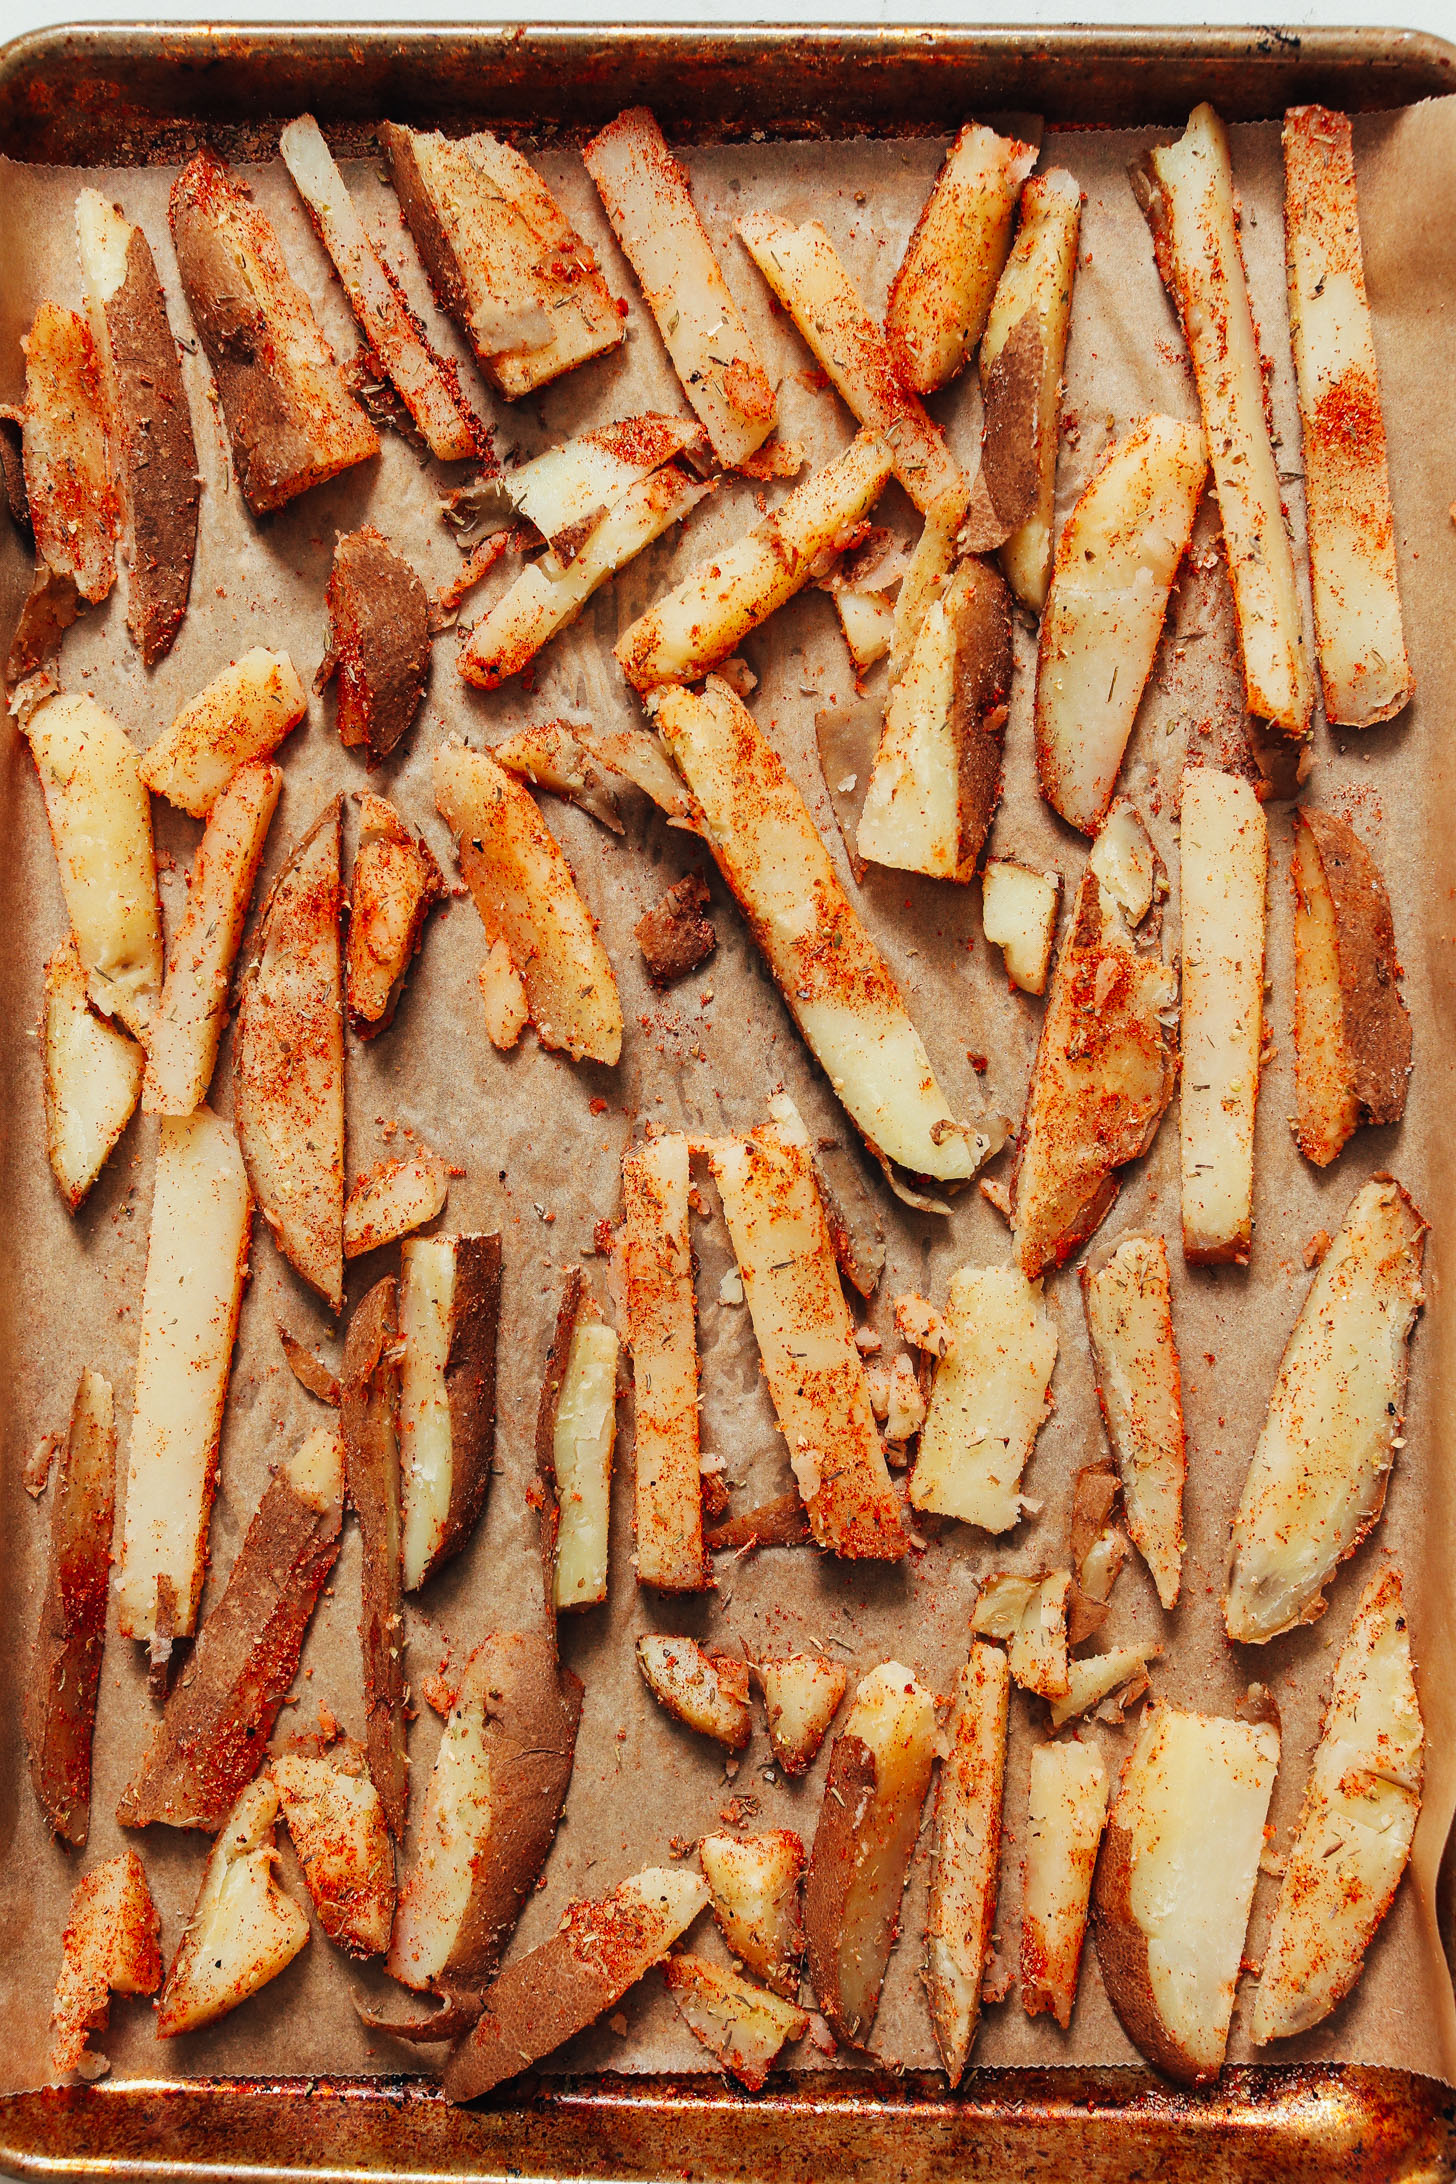 Unbaked cajun fries on a parchment-lined baking sheet